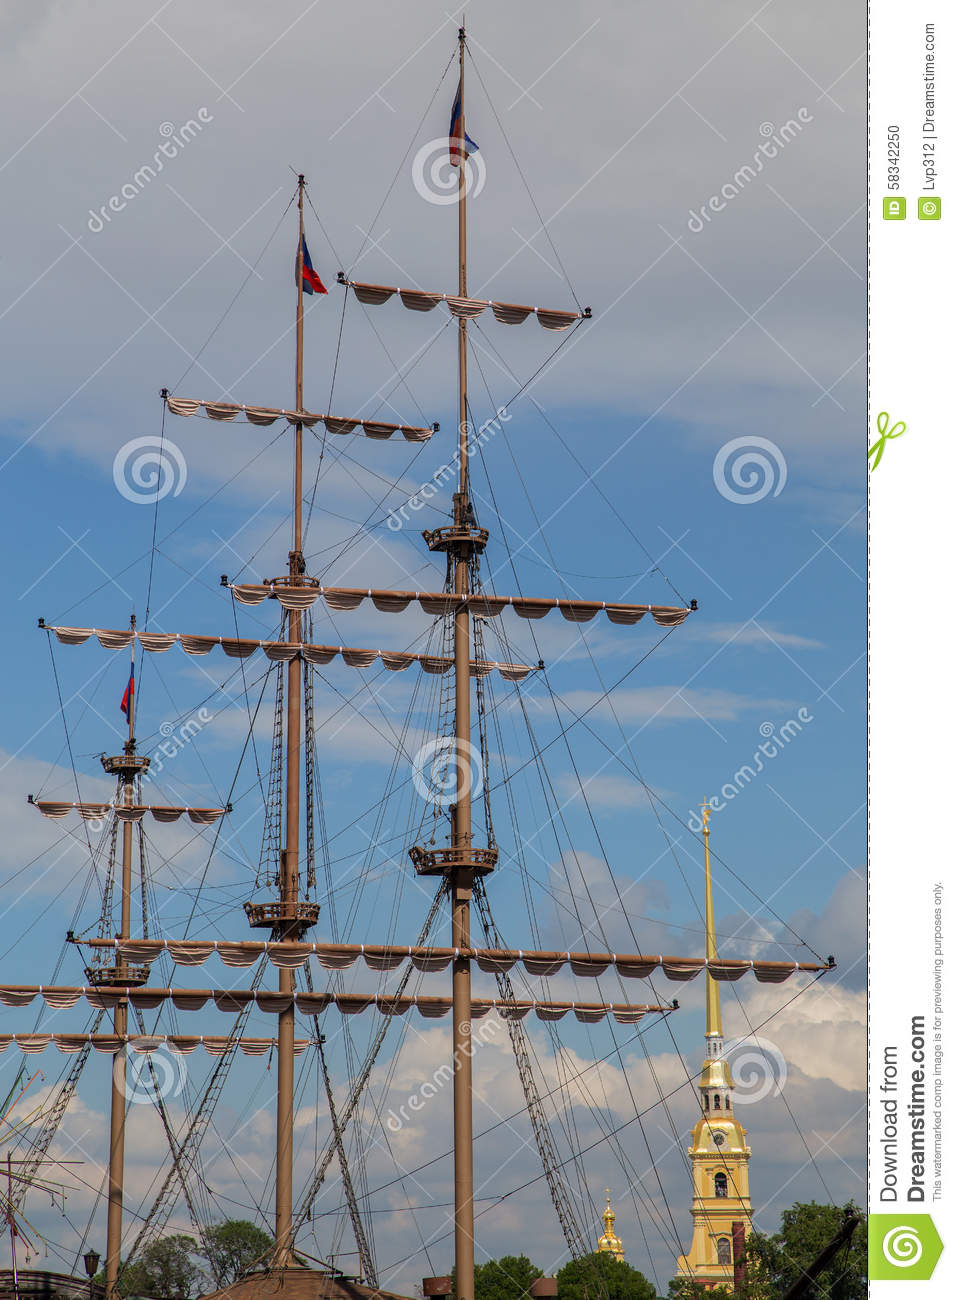 the mast of the ship